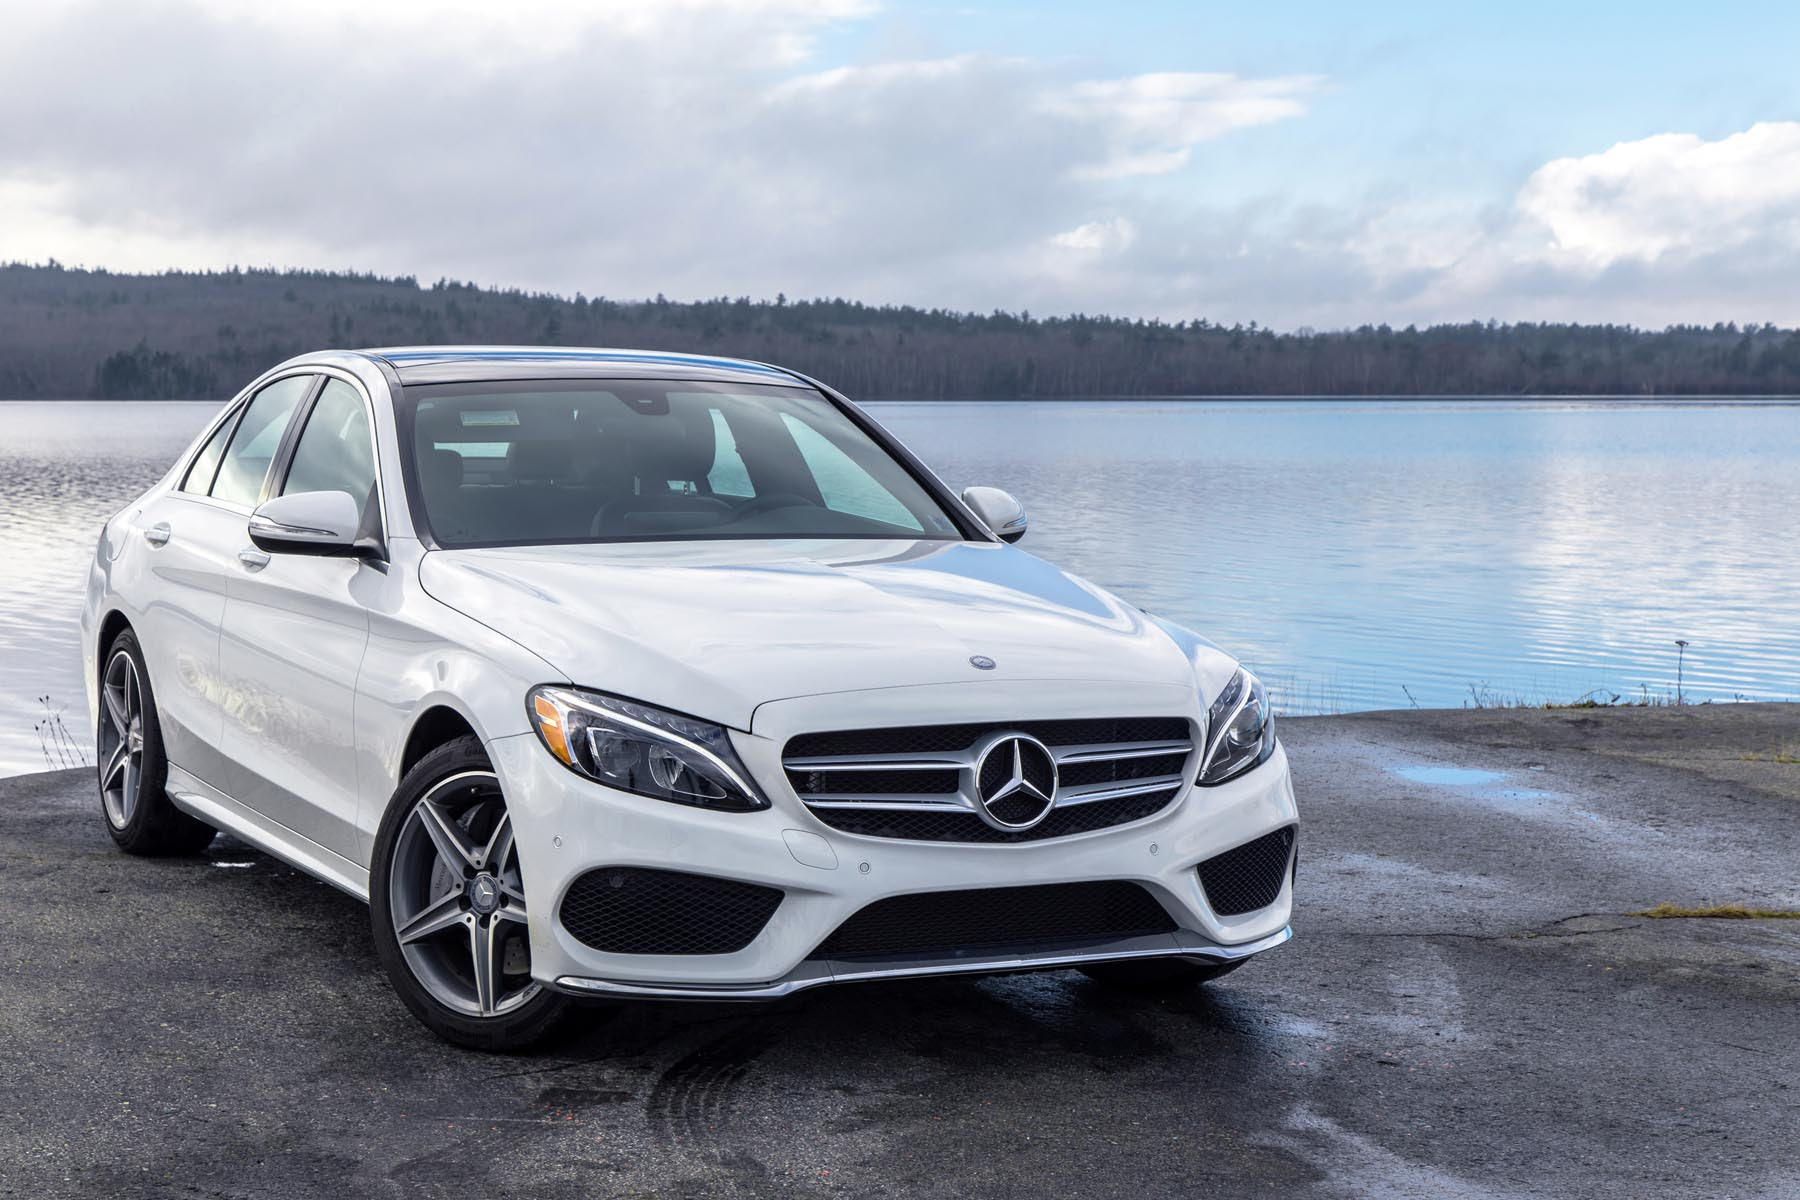 2015 Mercedes-Benz C 400 4MATIC - Autos.ca